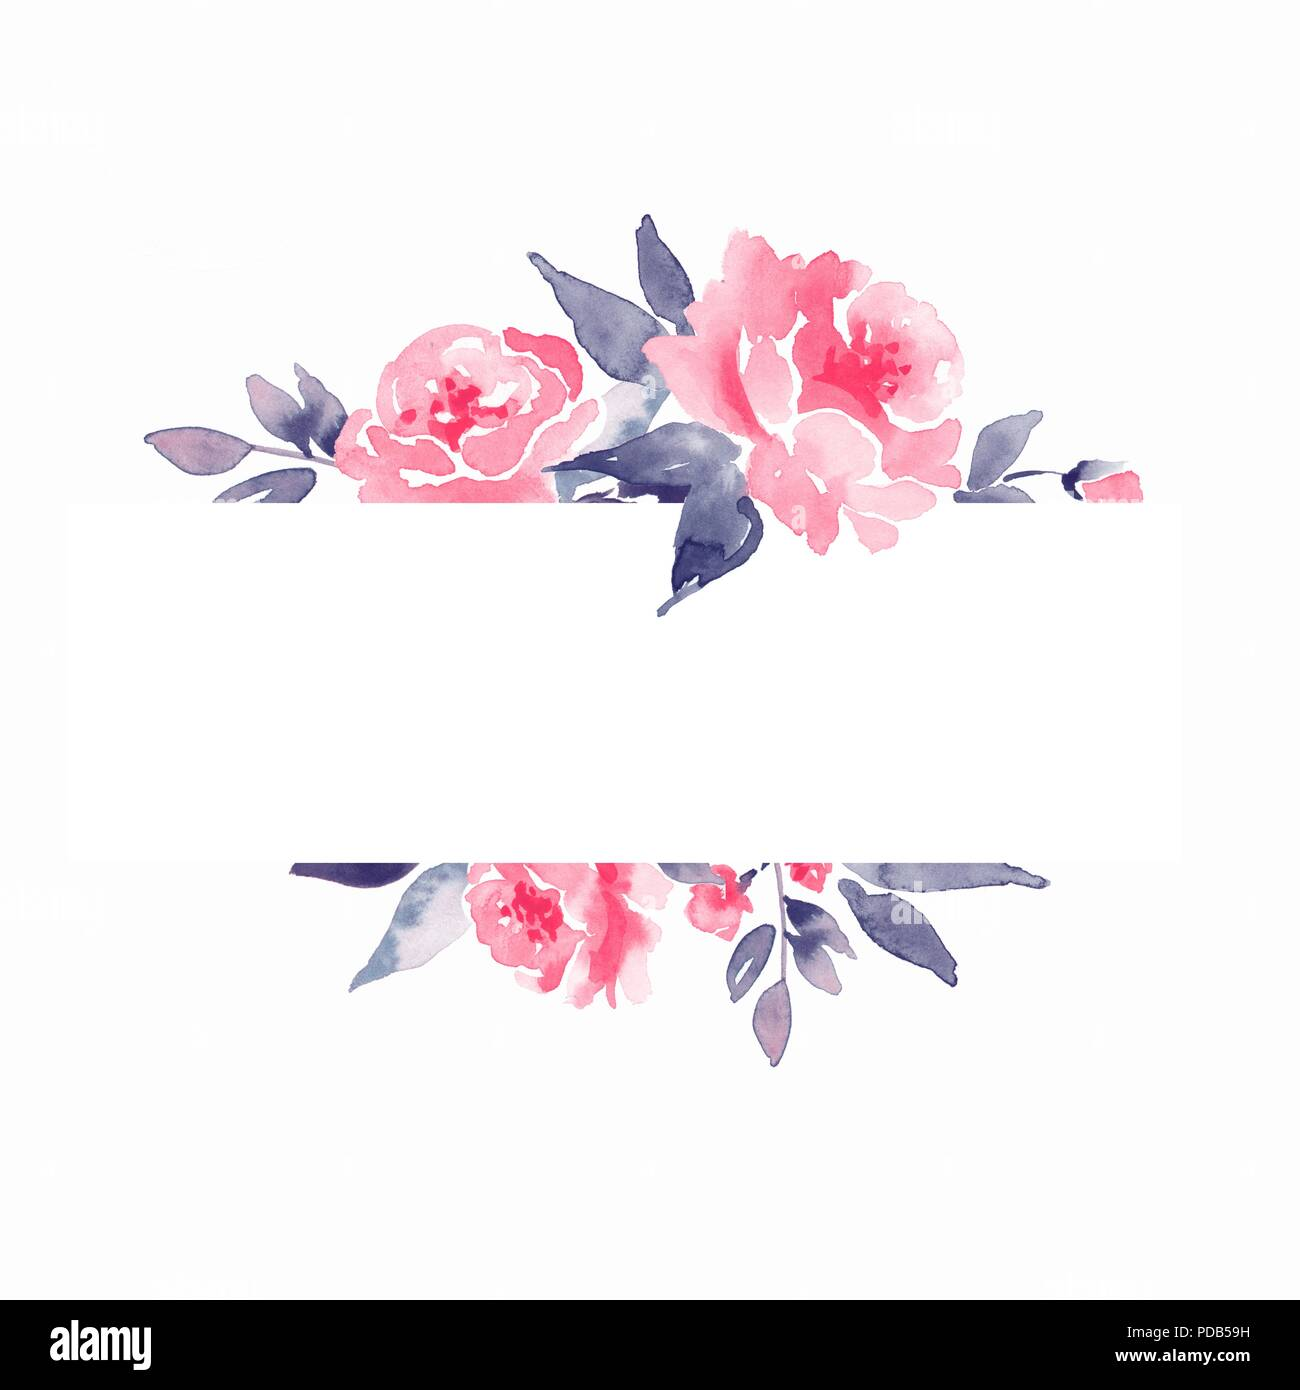 Watercolor Floral Frame Element For Design Background With Flowers Stock Photo 214760605 Alamy